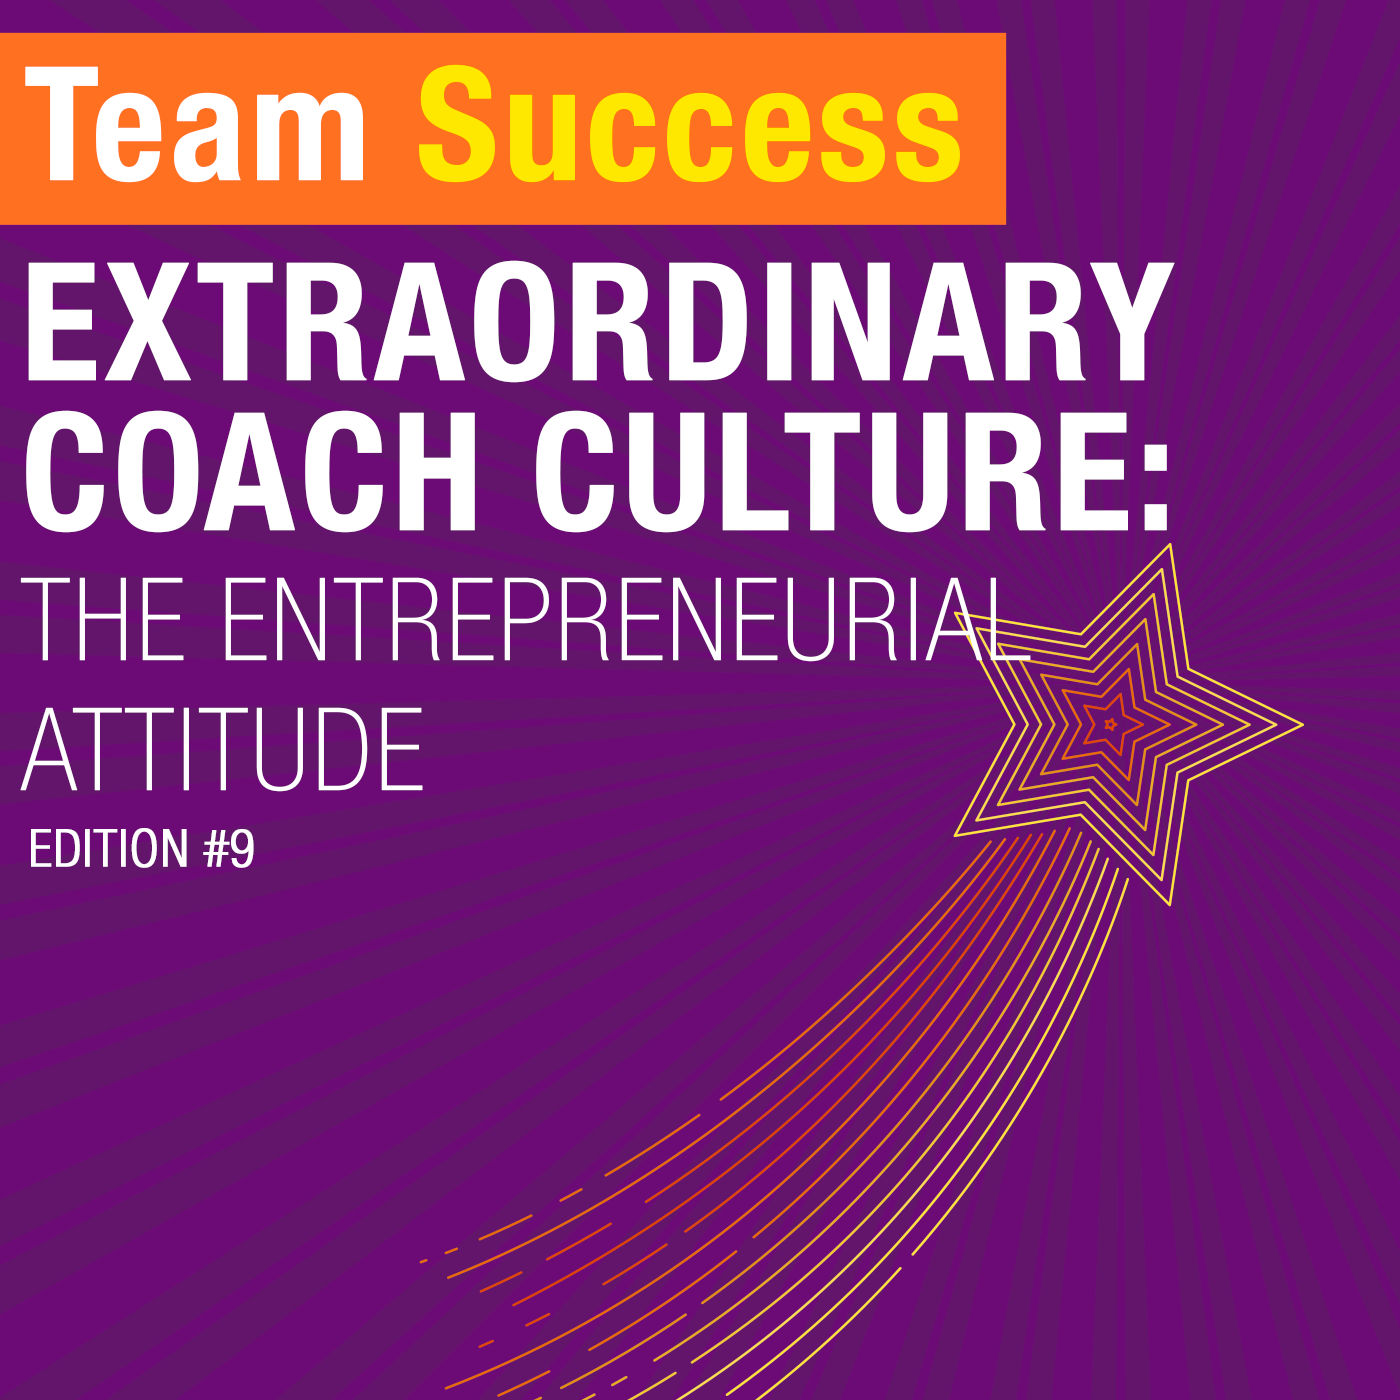 Extraordinary Coach Culture Entrepreneurial Attitude